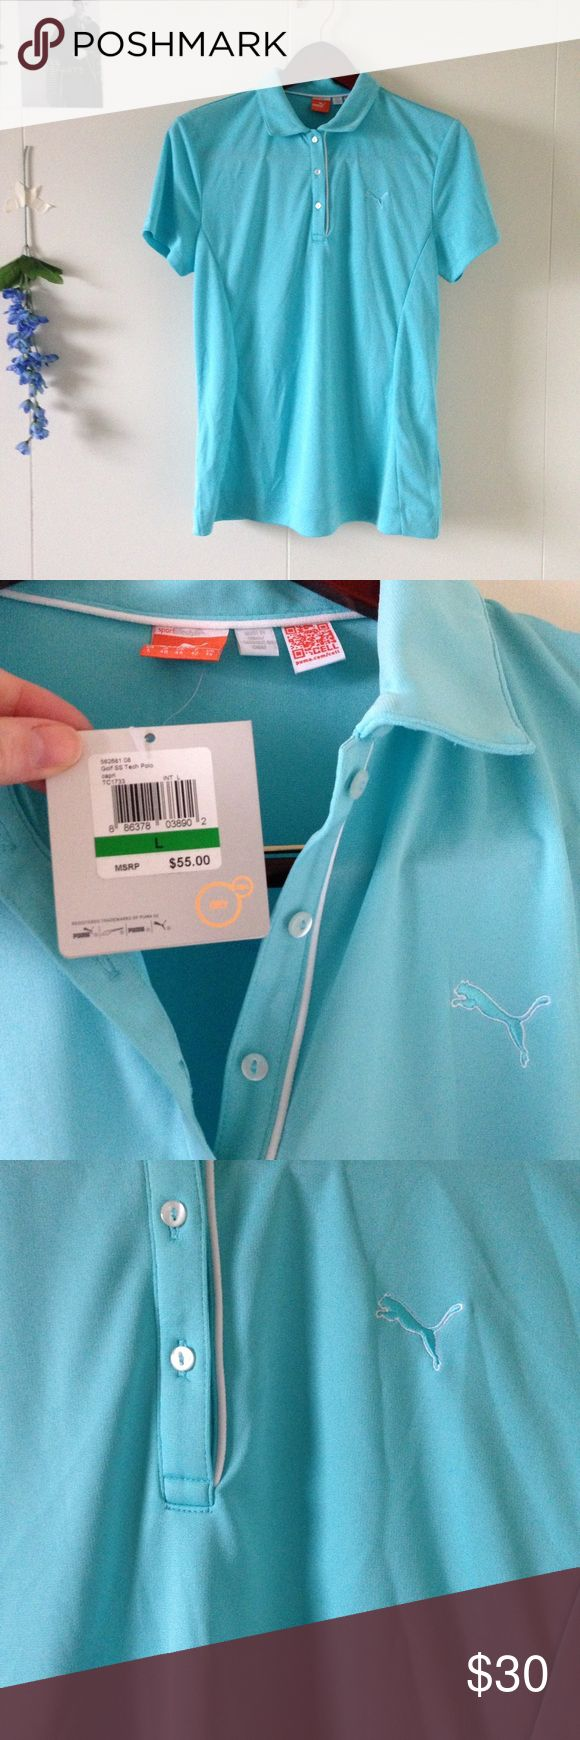 NEW Puma golf blue turquoise shirt top sportswear NEW with tags! Lovely sportswear! 🔹💙🔹 Puma Tops Tees - Short Sleeve